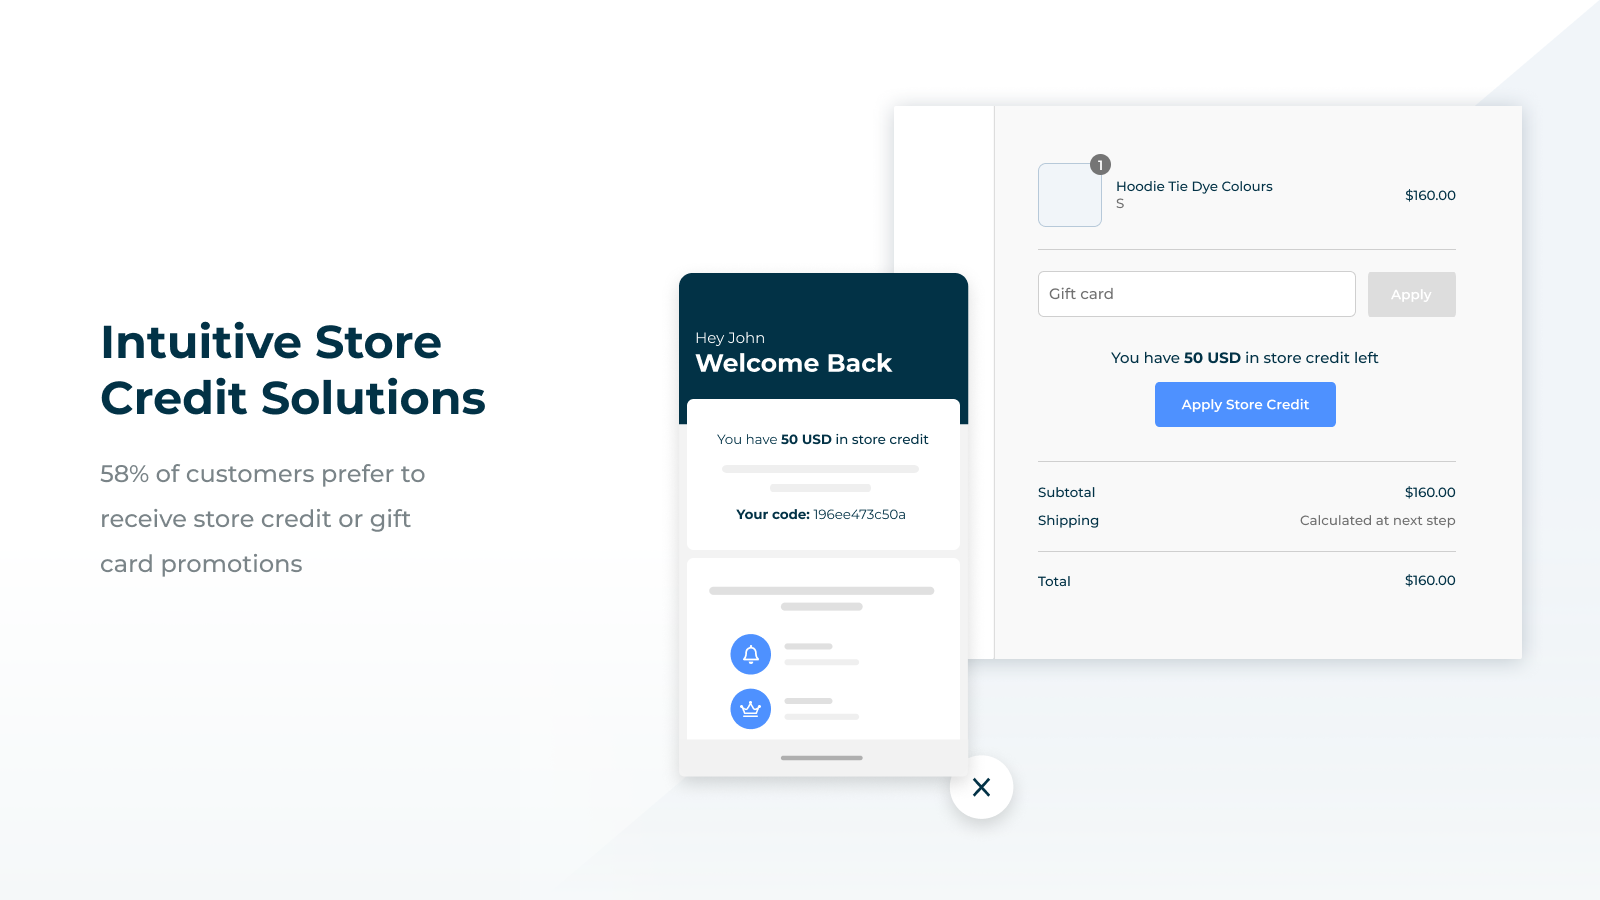 Intuitive Store Credit Solutions